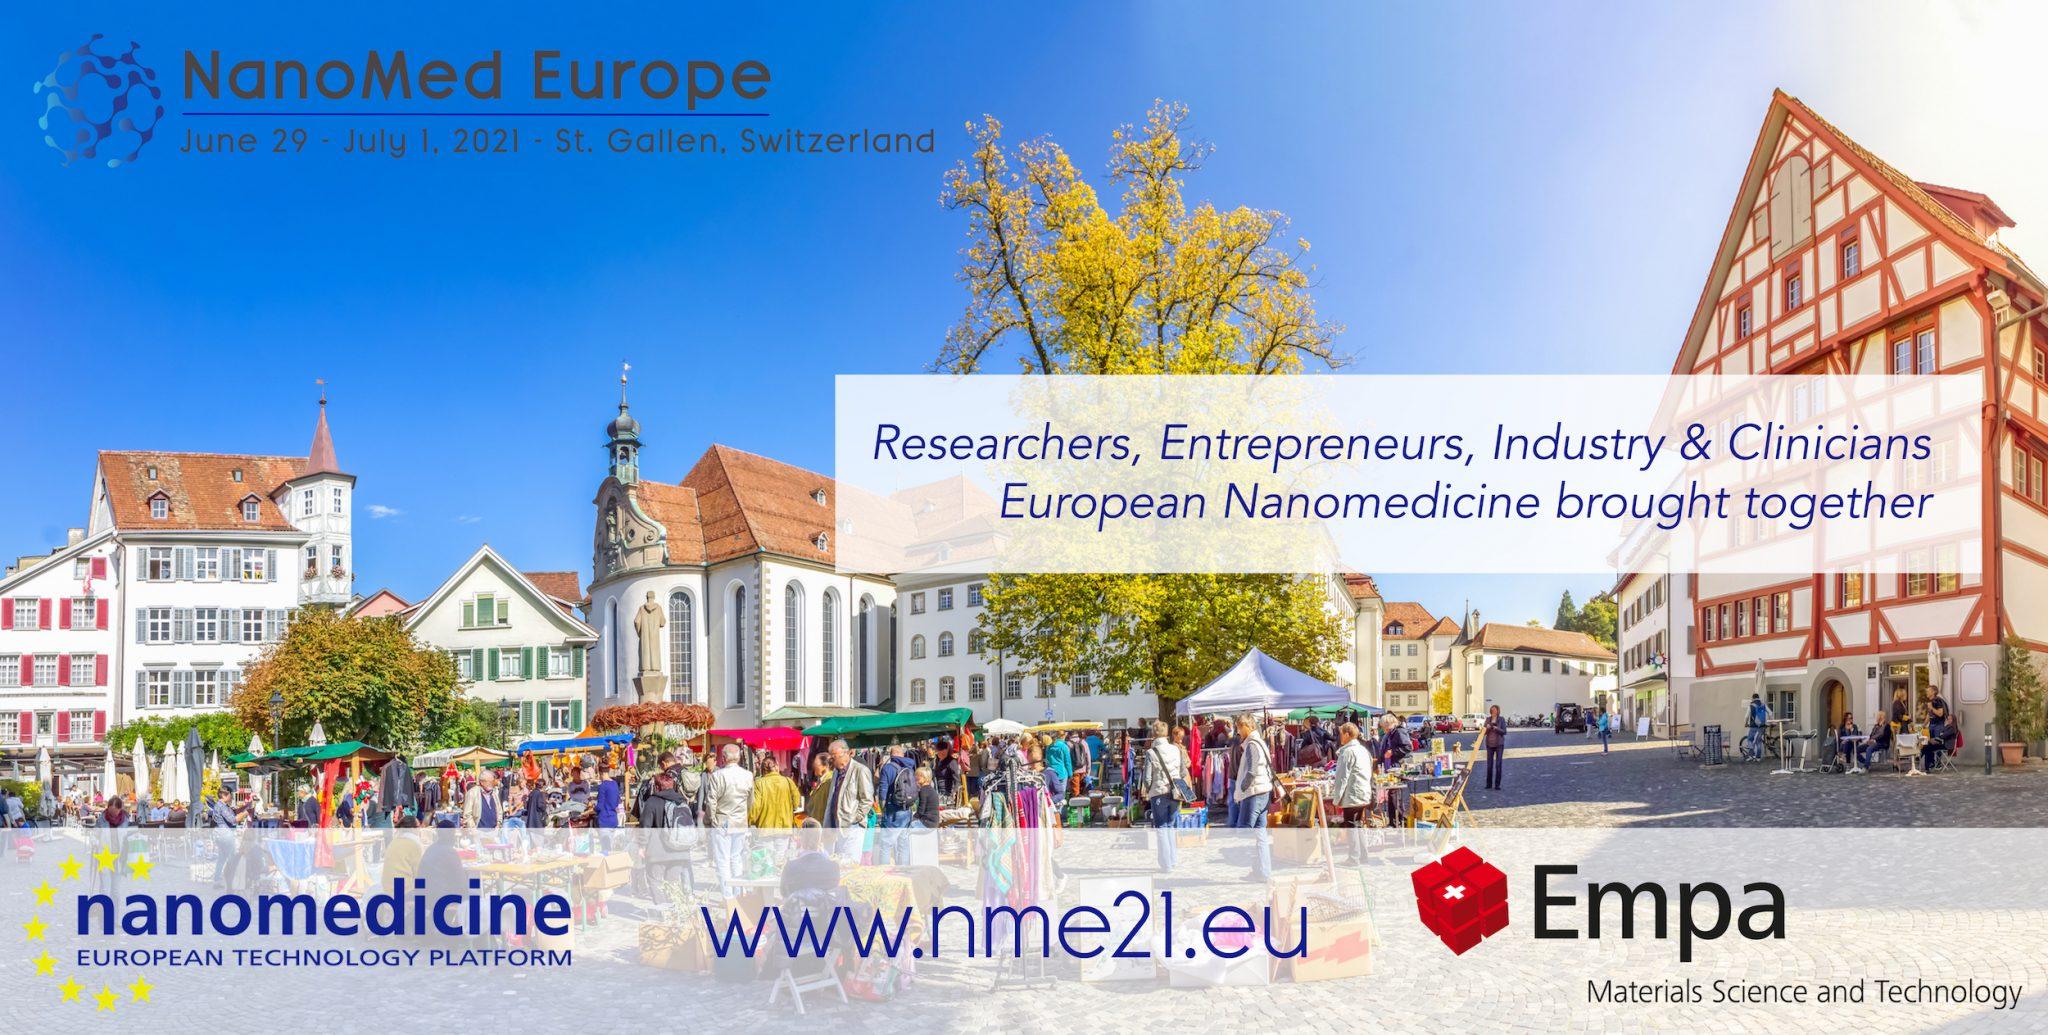 SAVE THE DATE! #NME21 Nanomed Europe 2021 / June 29th – July 1st / St. Gallen – Switzerland